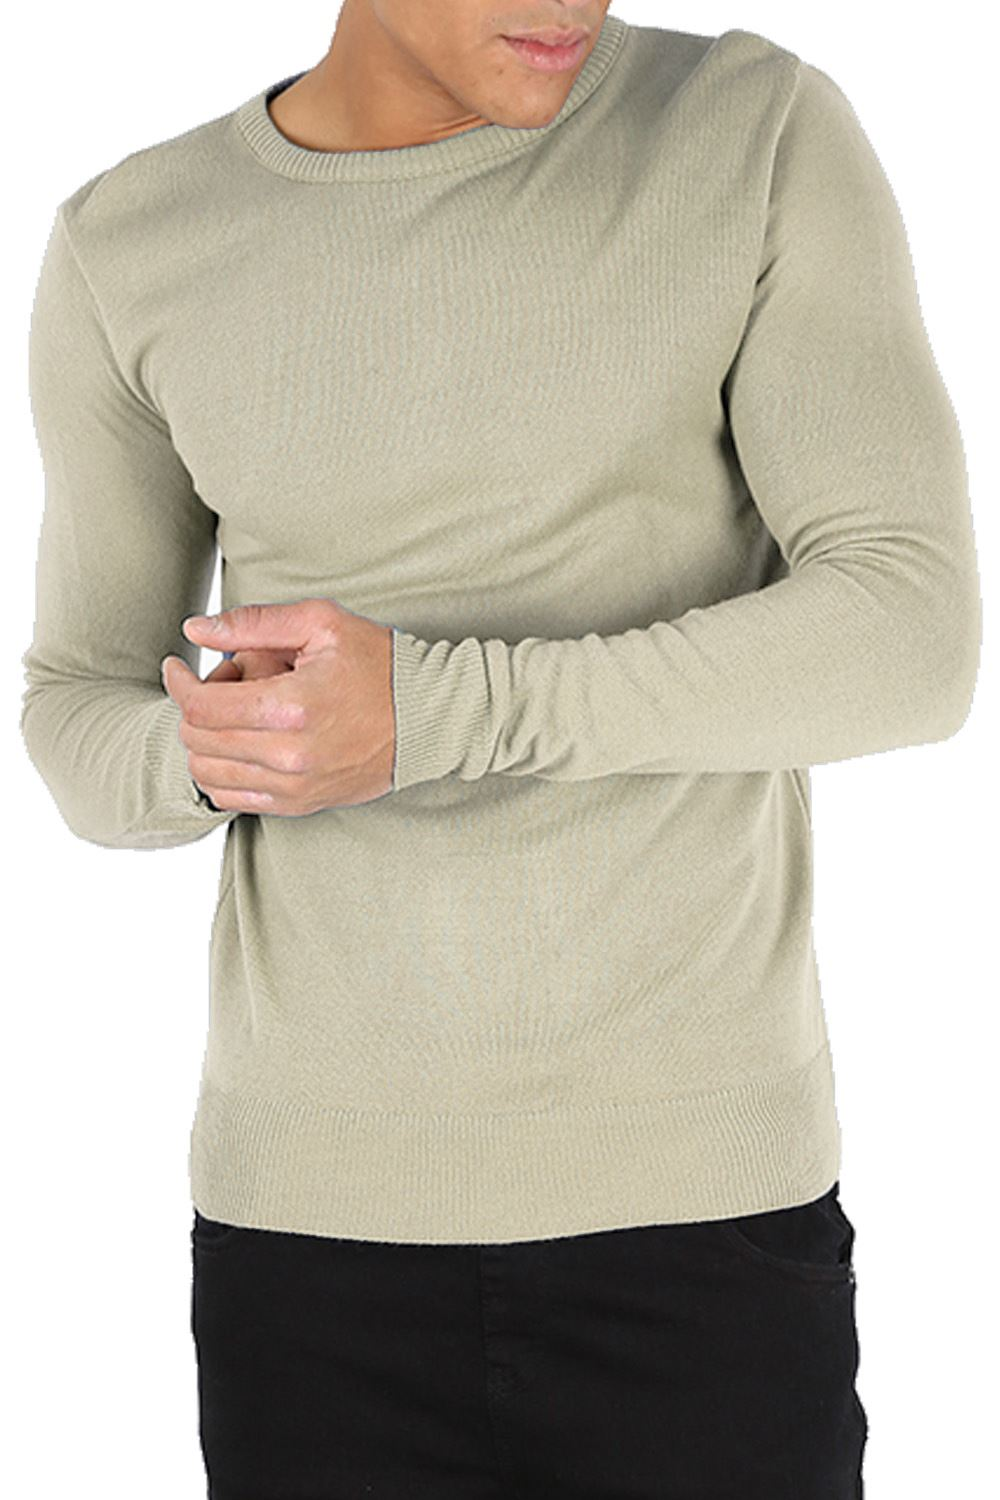 Mens Knitted Block Side Stripe Long Sleeve Pullover Stretchy Jumper Sweater Top